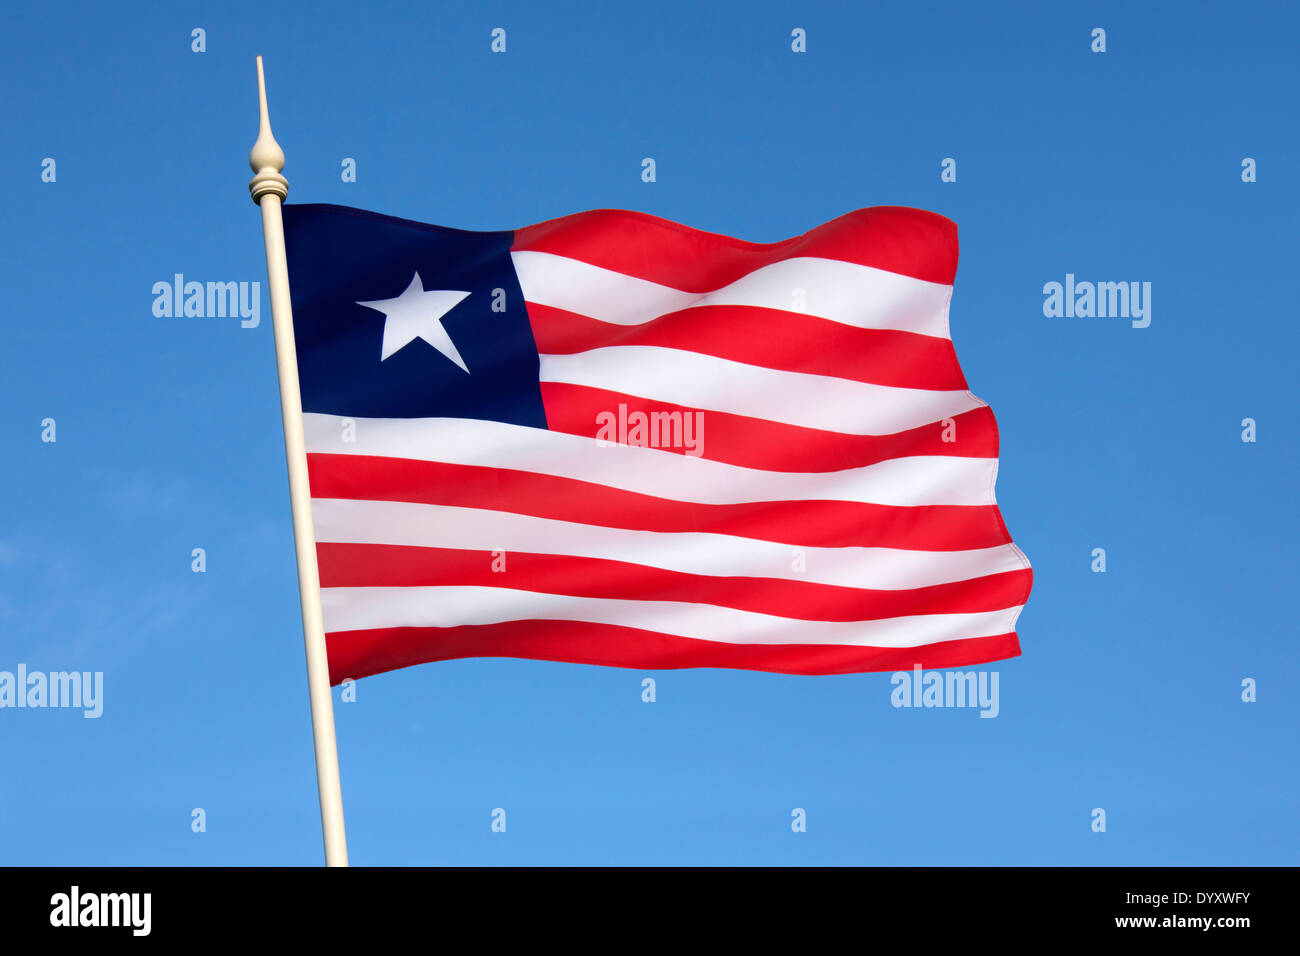 The Liberian flag - Stock Image